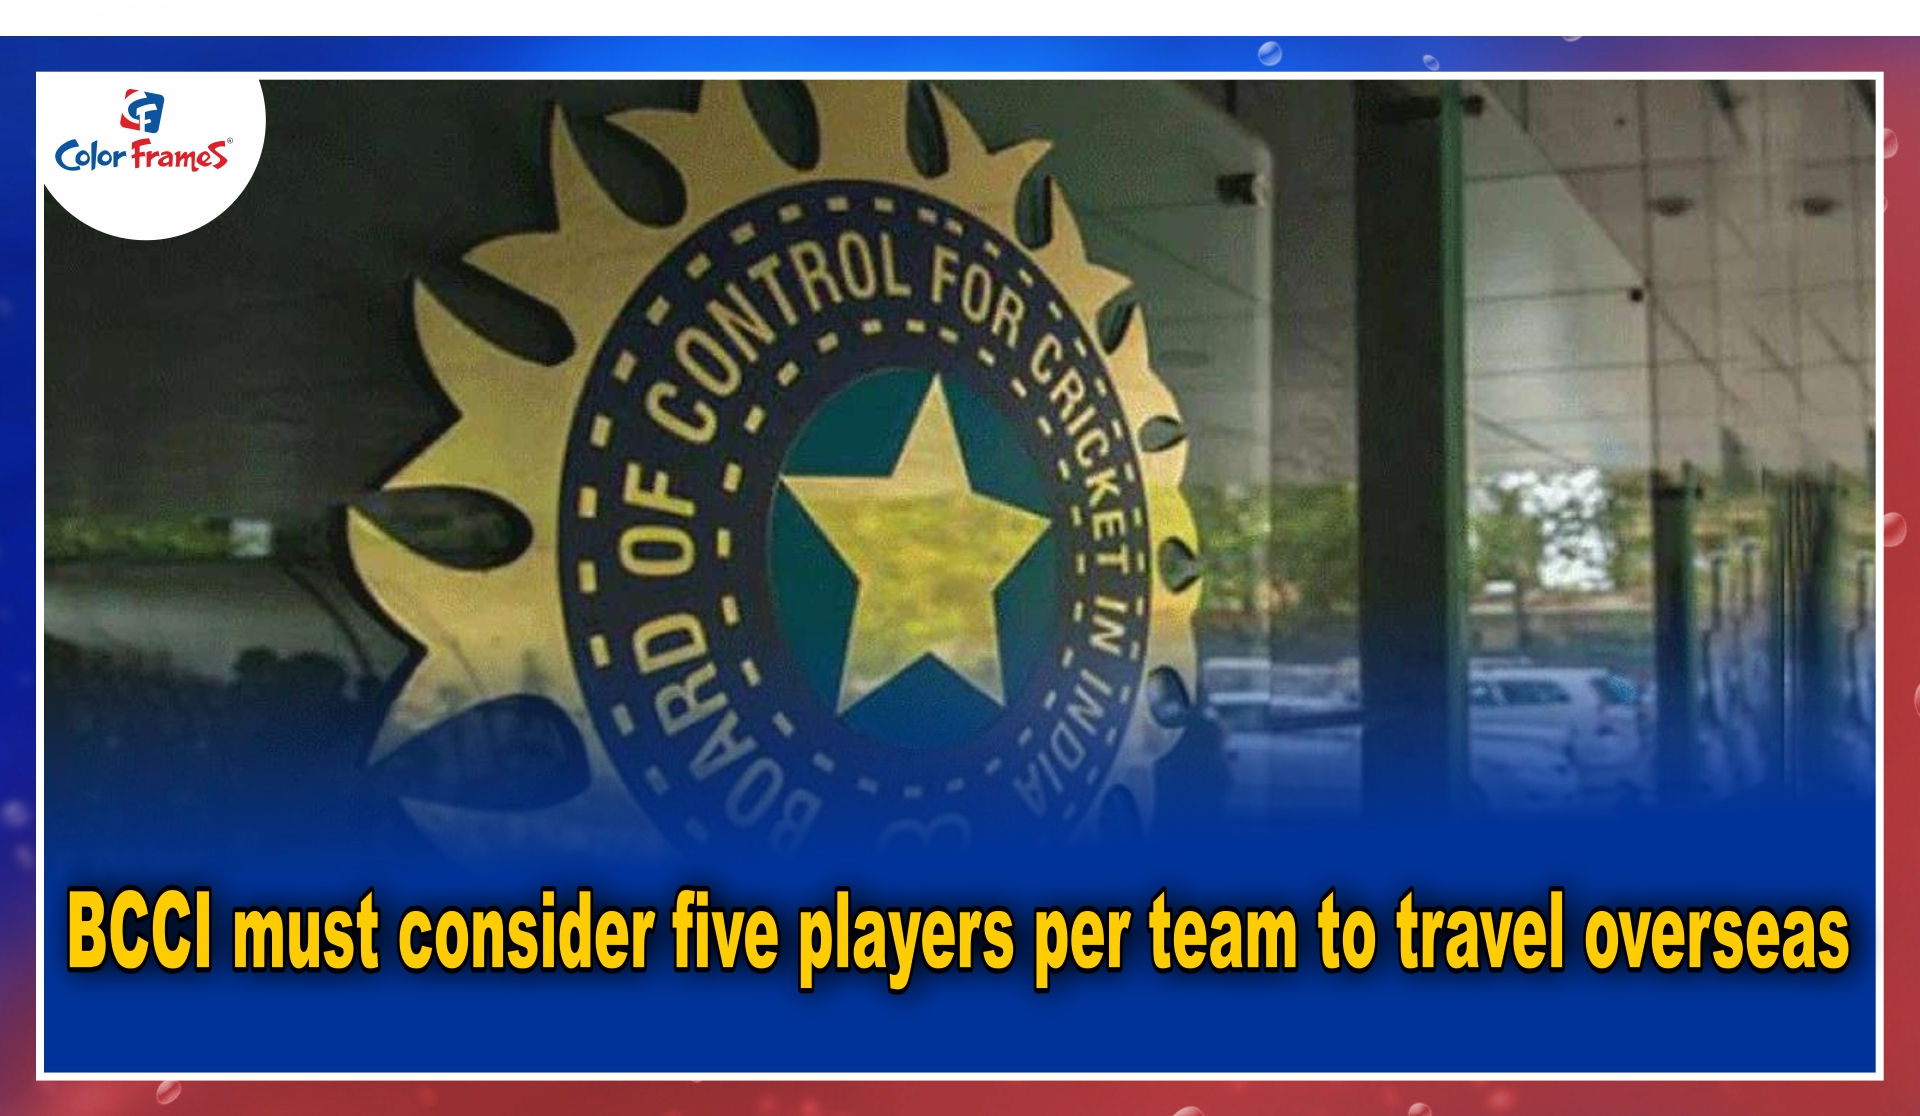 BCCI must consider five players per team to travel overseas